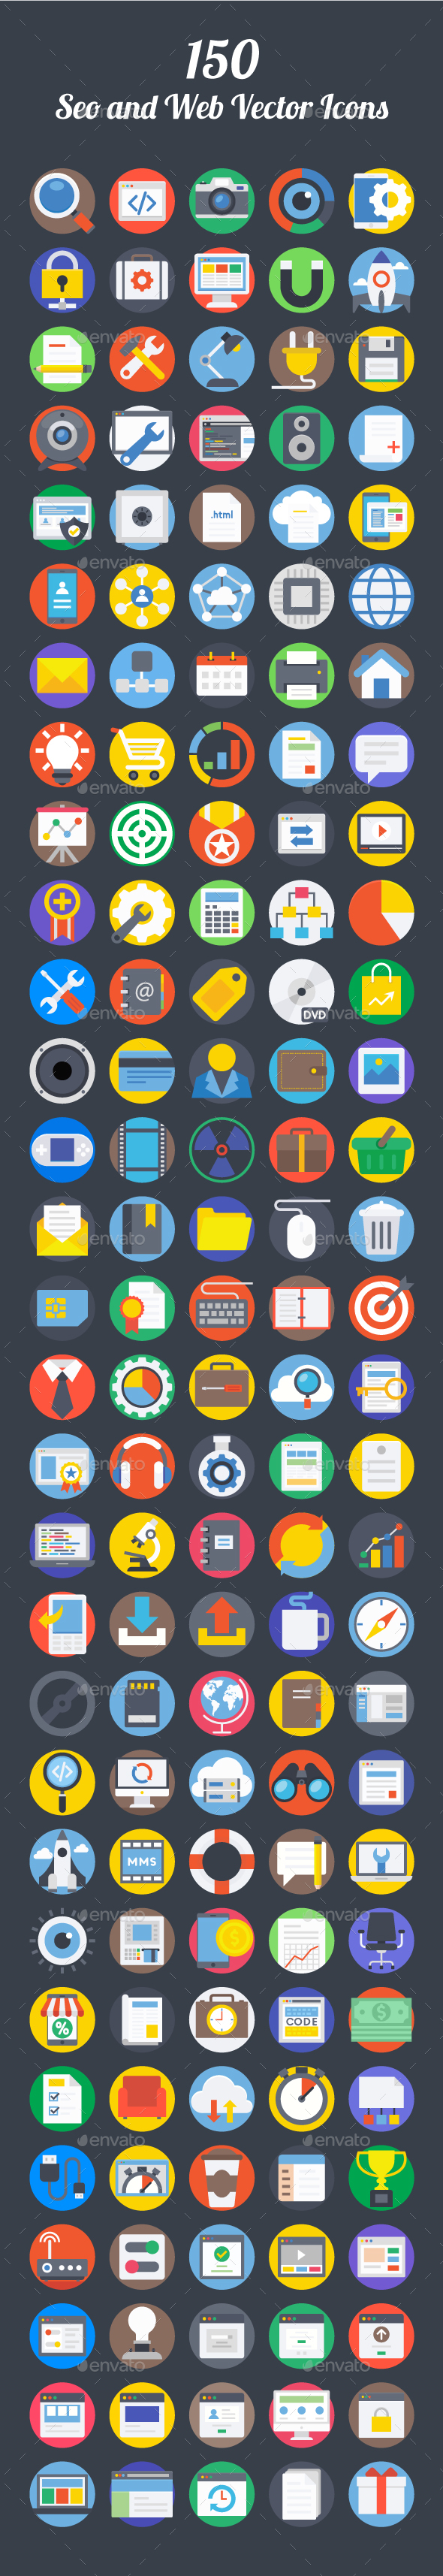 150 Seo and Web Vector Icons - Icons